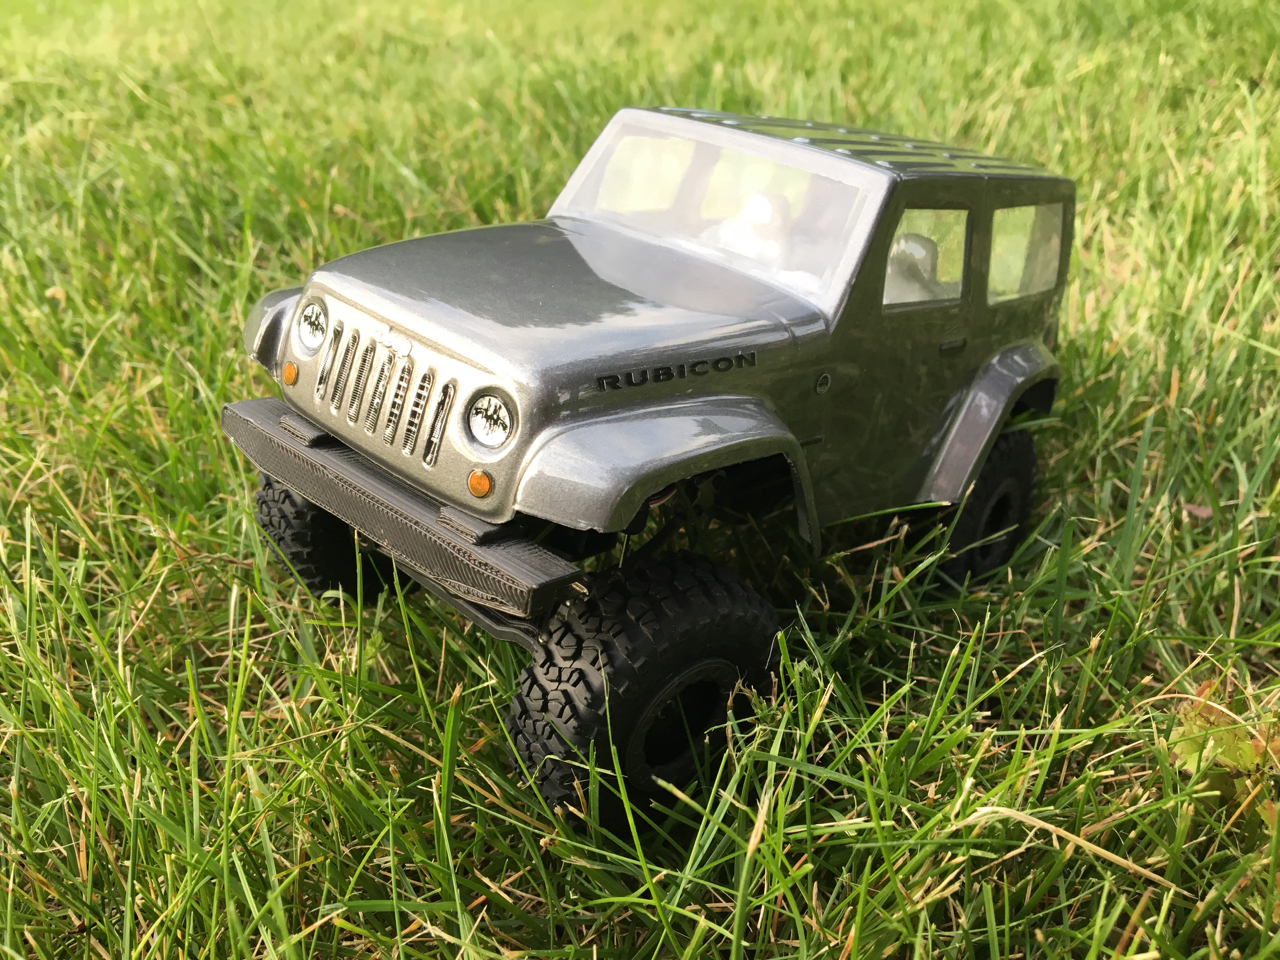 Pro-Line Jeep Wrangler body for the Ambush 4x4